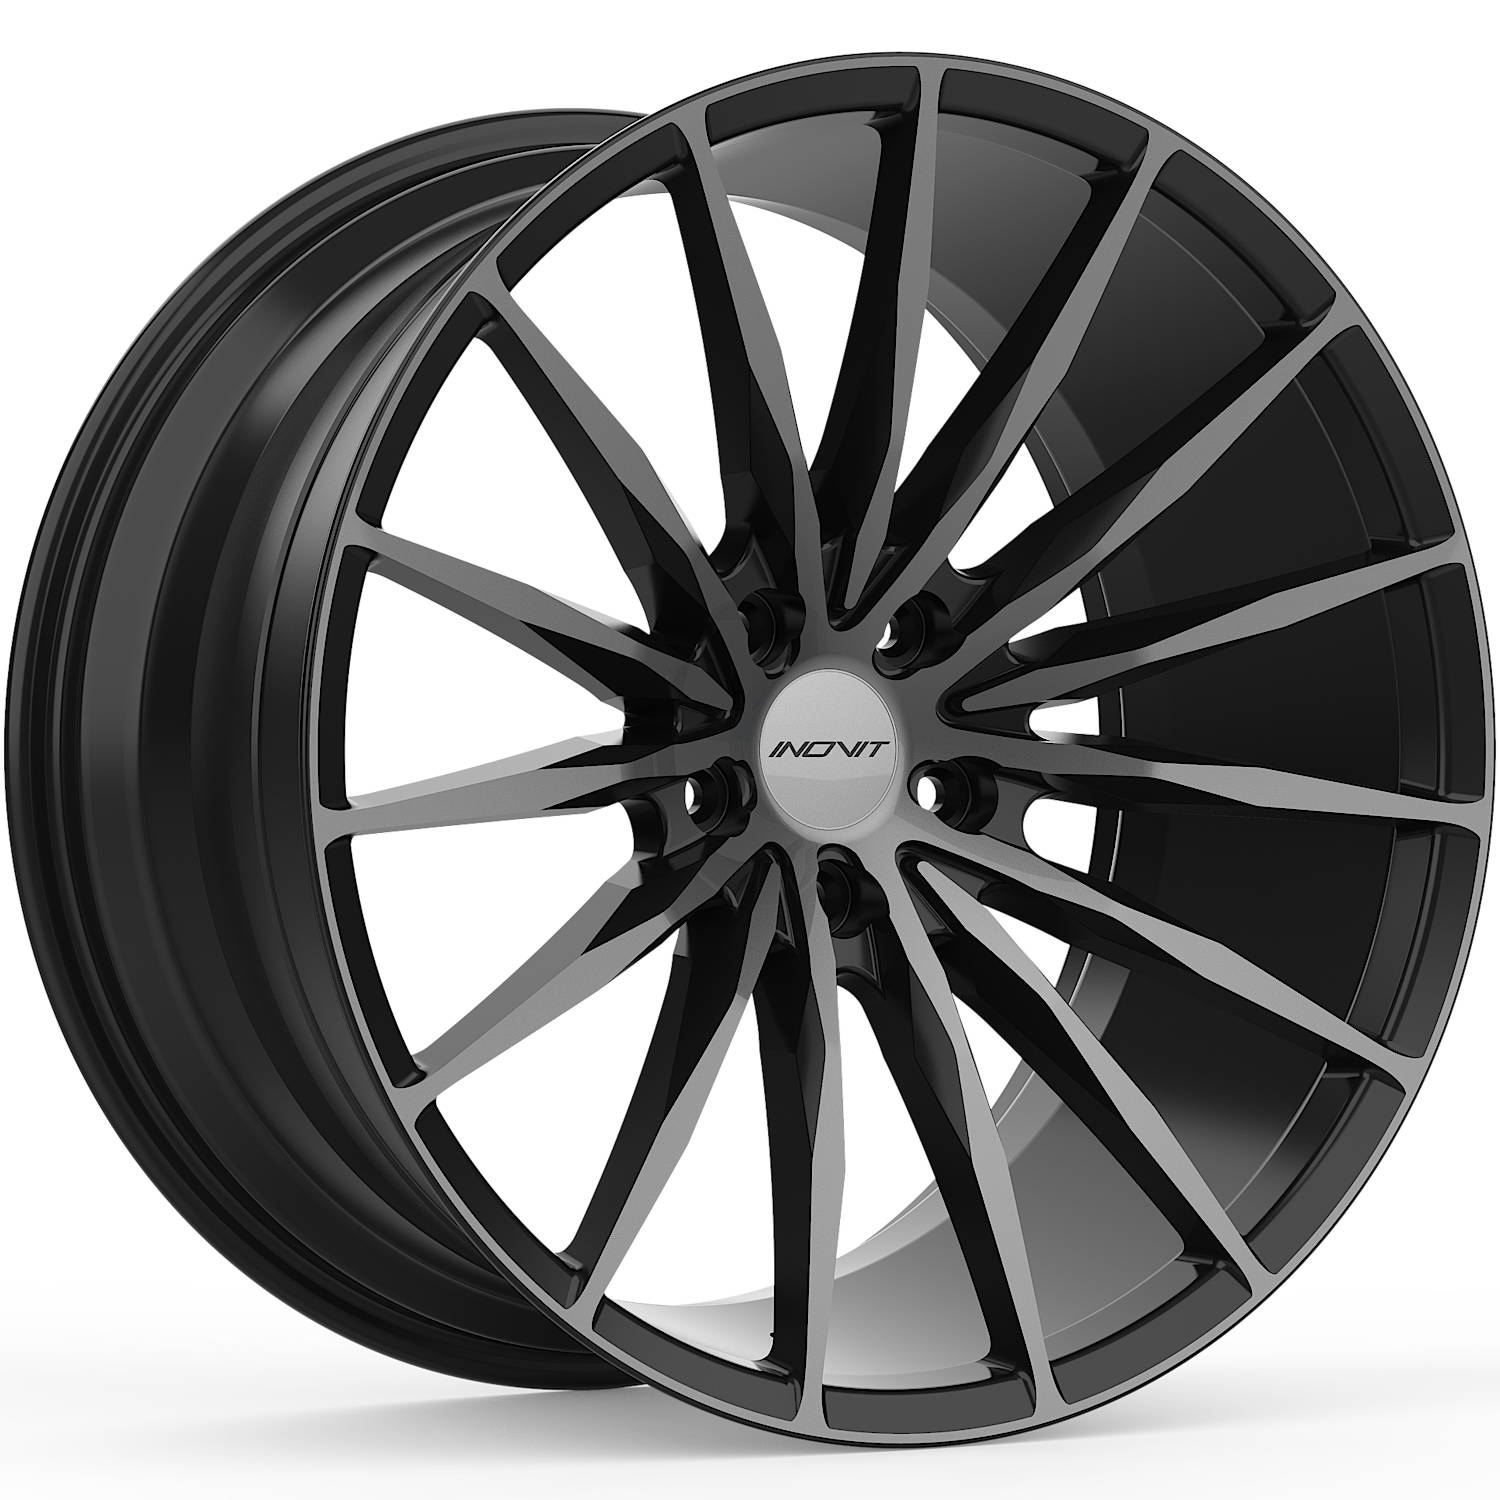 INOVIT Torque Satin Black with Machined Spoke Faces and Dark Tint19x8.5 +38mm